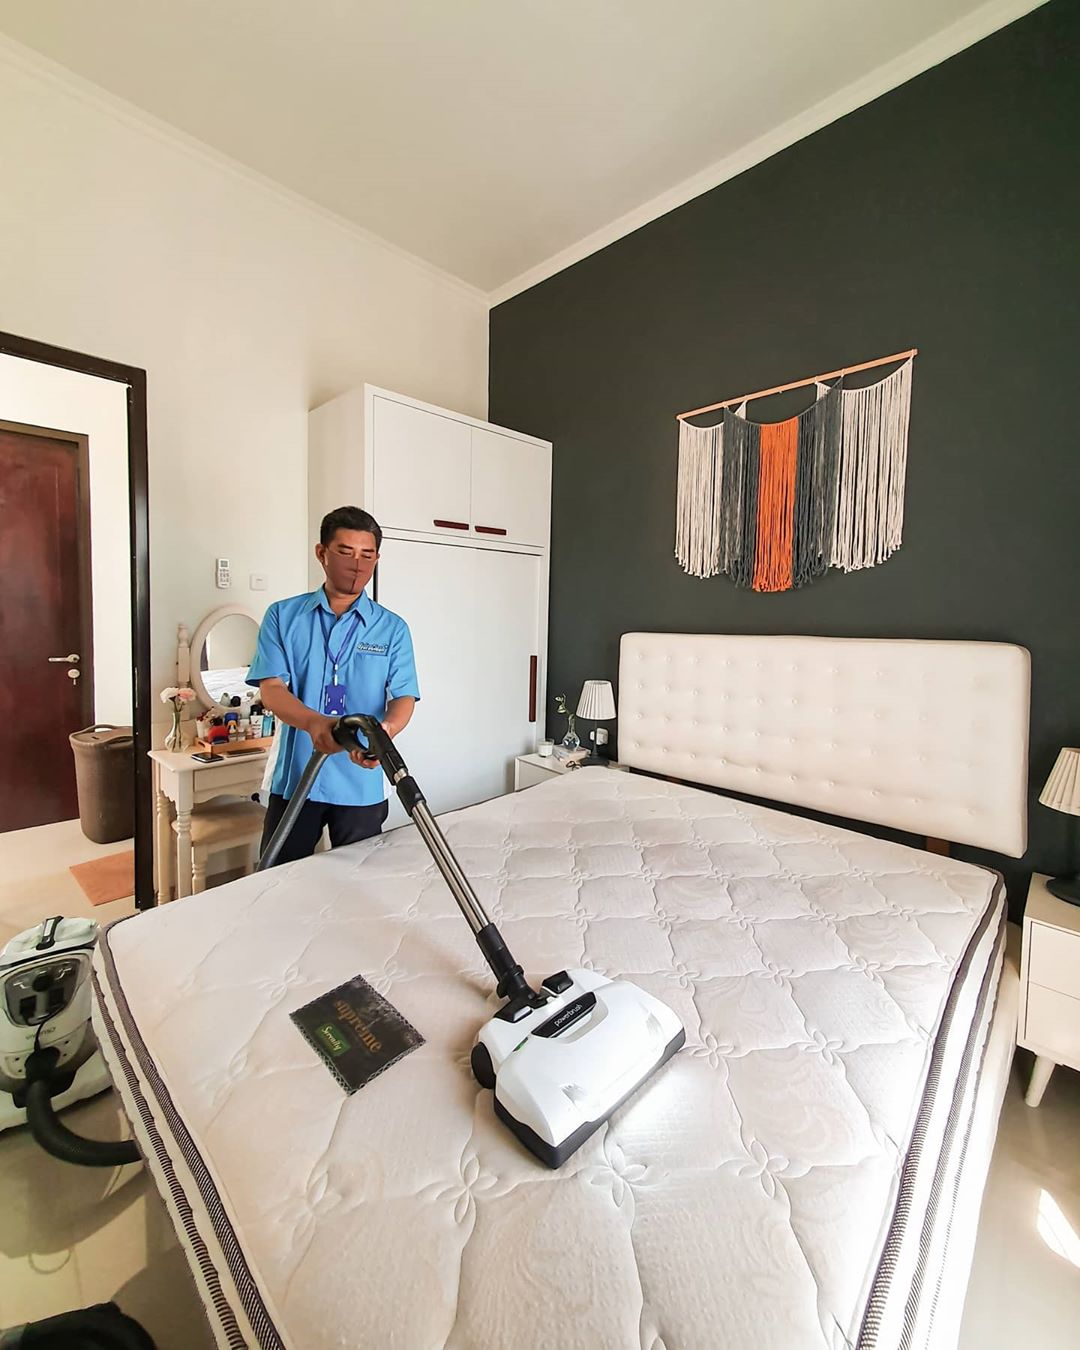 Cleaning service Indonesia - HydroClean Indonesia 1